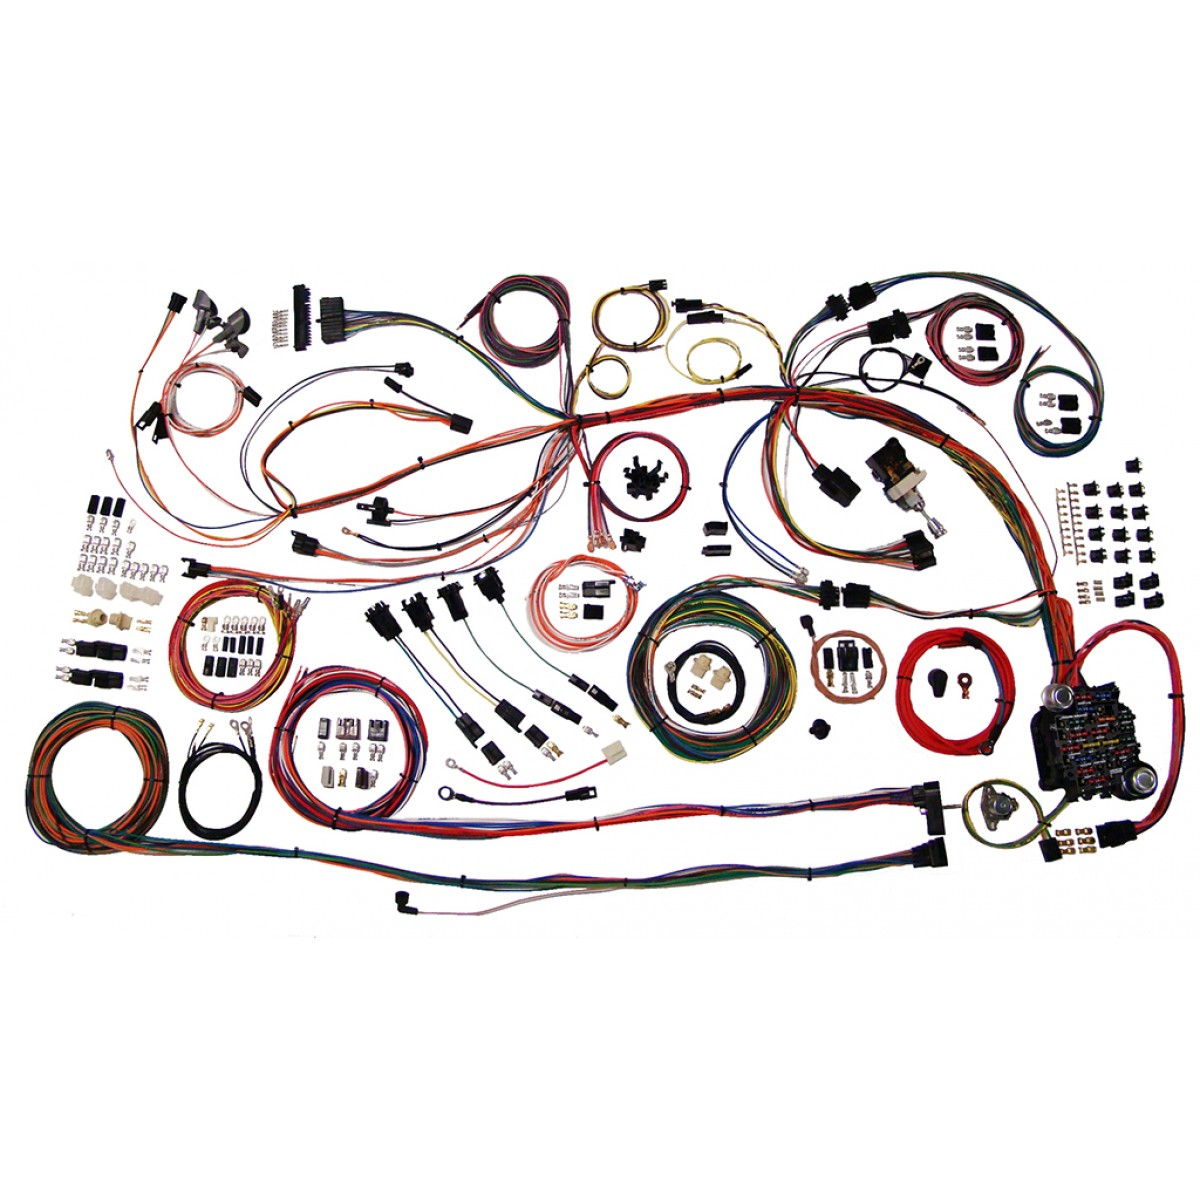 complete wiring harness kit 1968 1969 chevelle part 510158 68 69 chevelle full wire harness 510158_2 1968 1969 el camino wiring harness kit part 510158 1968 1969 engine wiring harness for sale at fashall.co